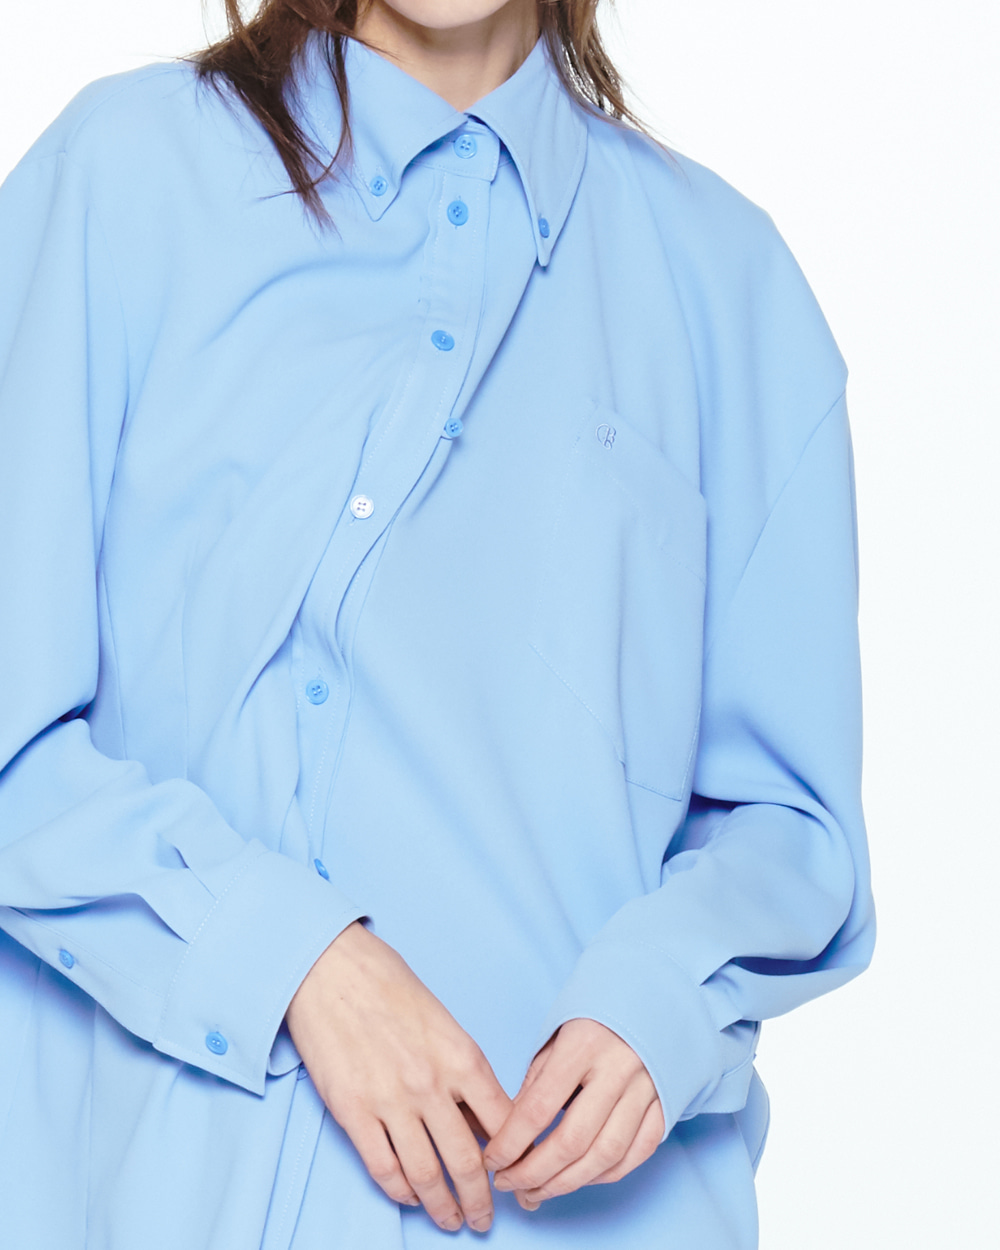 PF20 ASYMMETRIC SHIRT DRESS